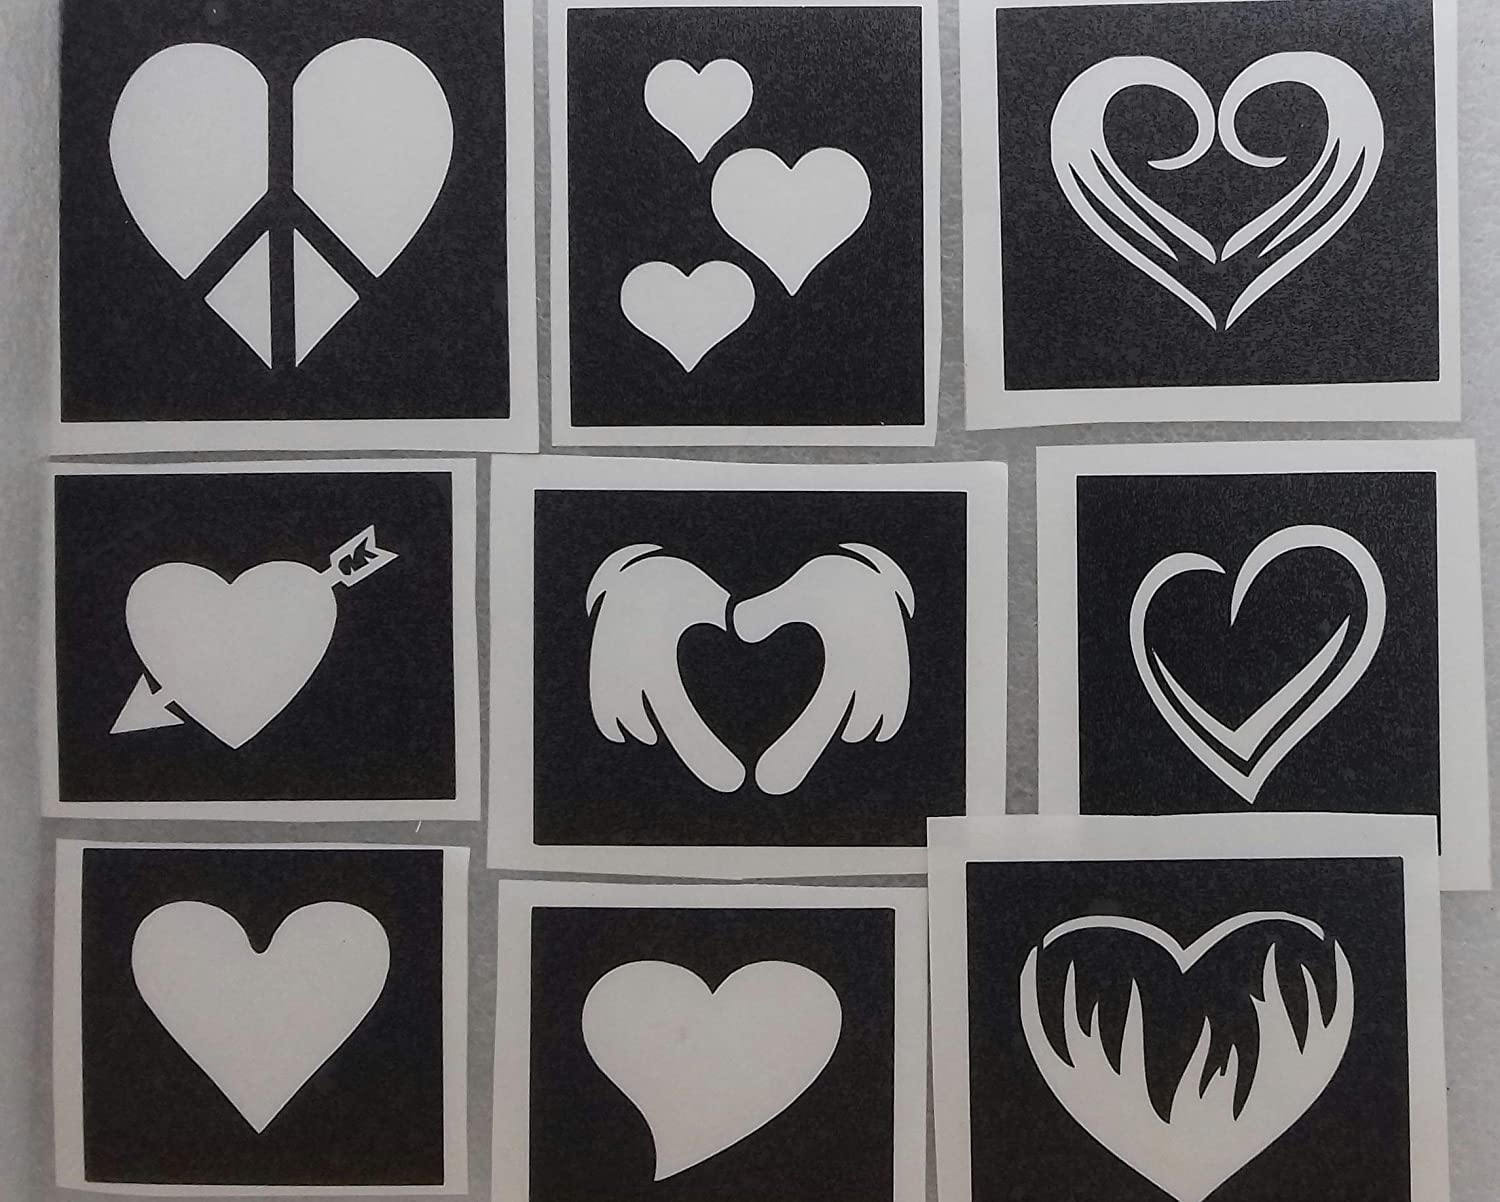 30 x heart themed stencils for glitter tattoos / airbrush tattoos / henna / cakes / many other uses Hearts girls love Body Art Desire